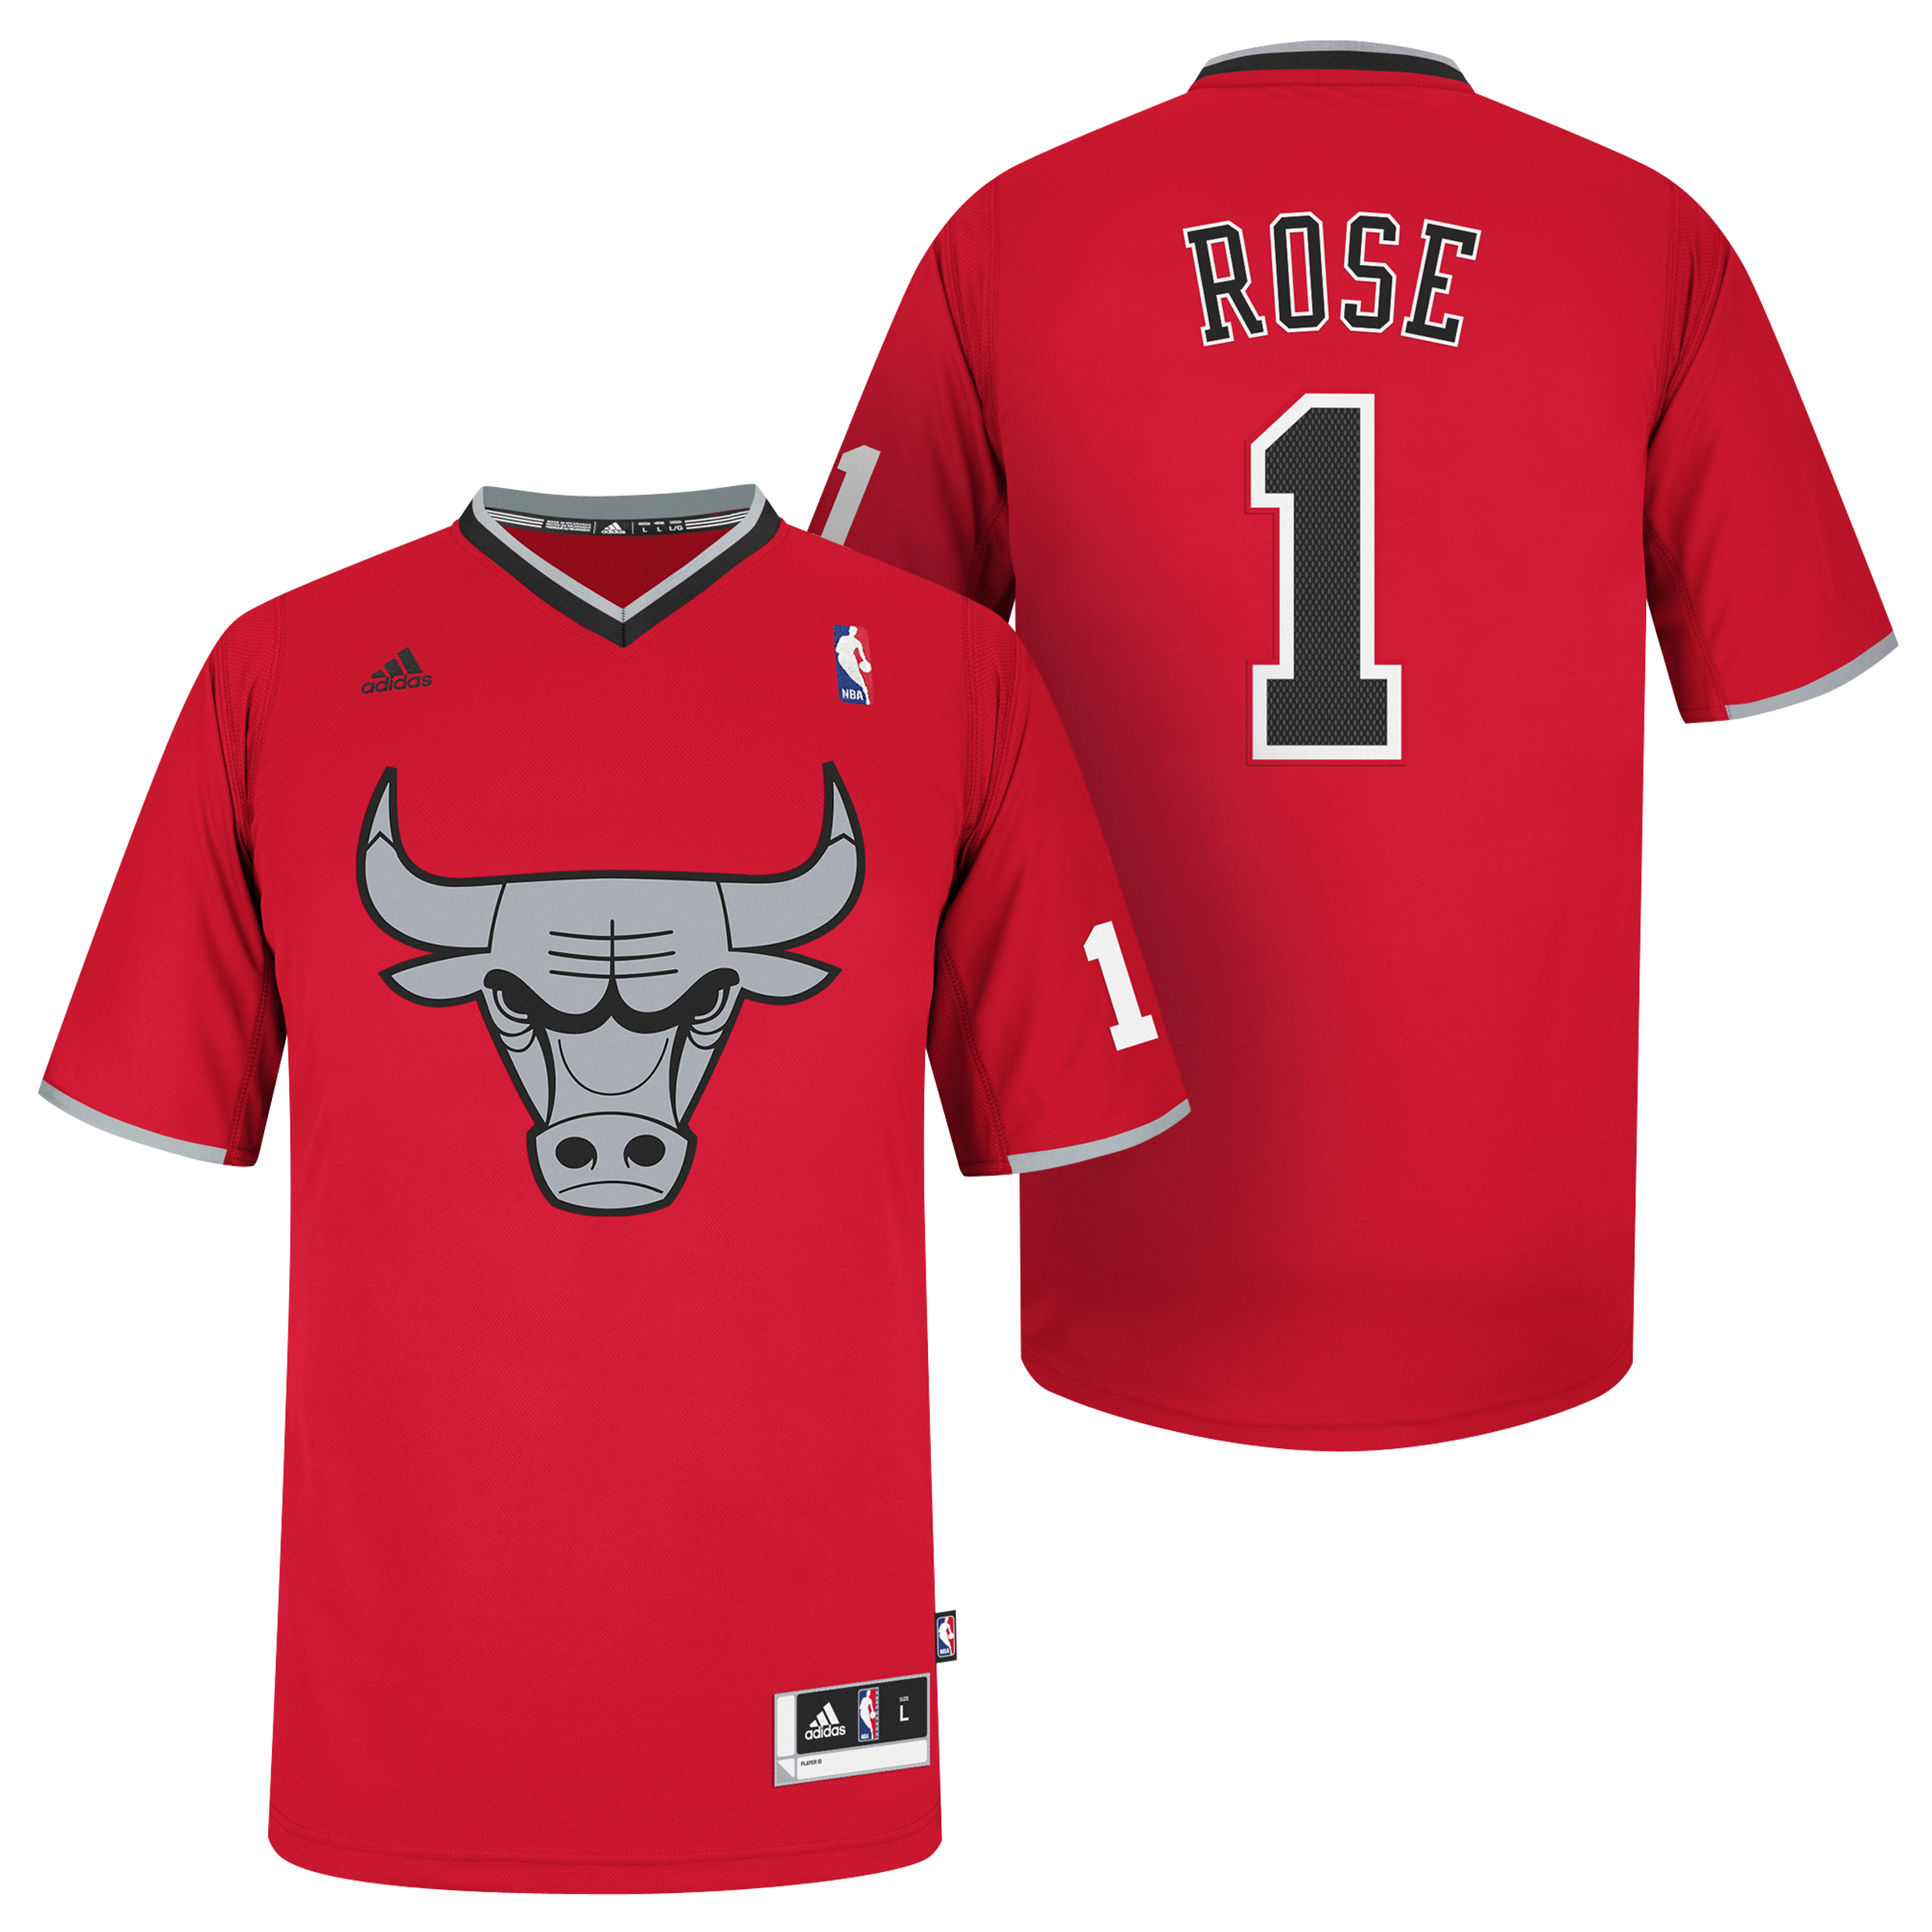 Chicago Bulls X-mas Big Logo Swingman Jersey - Derrick Rose